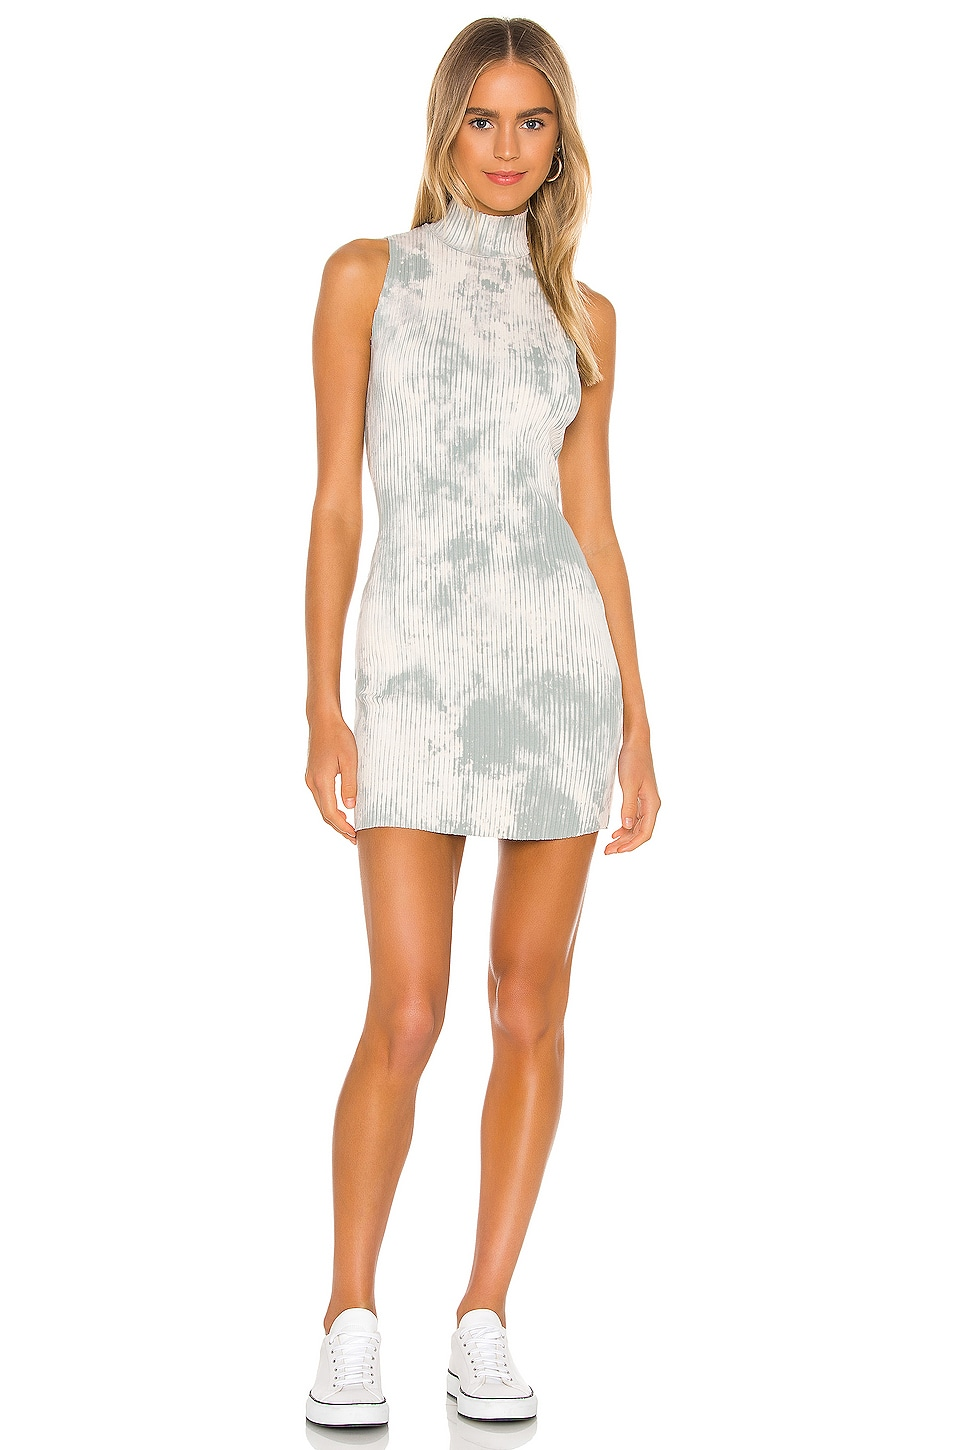 x REVOLVE Ibiza Racerback Dress XO             COTTON CITIZEN                                                                                                       CA$ 224.67 3